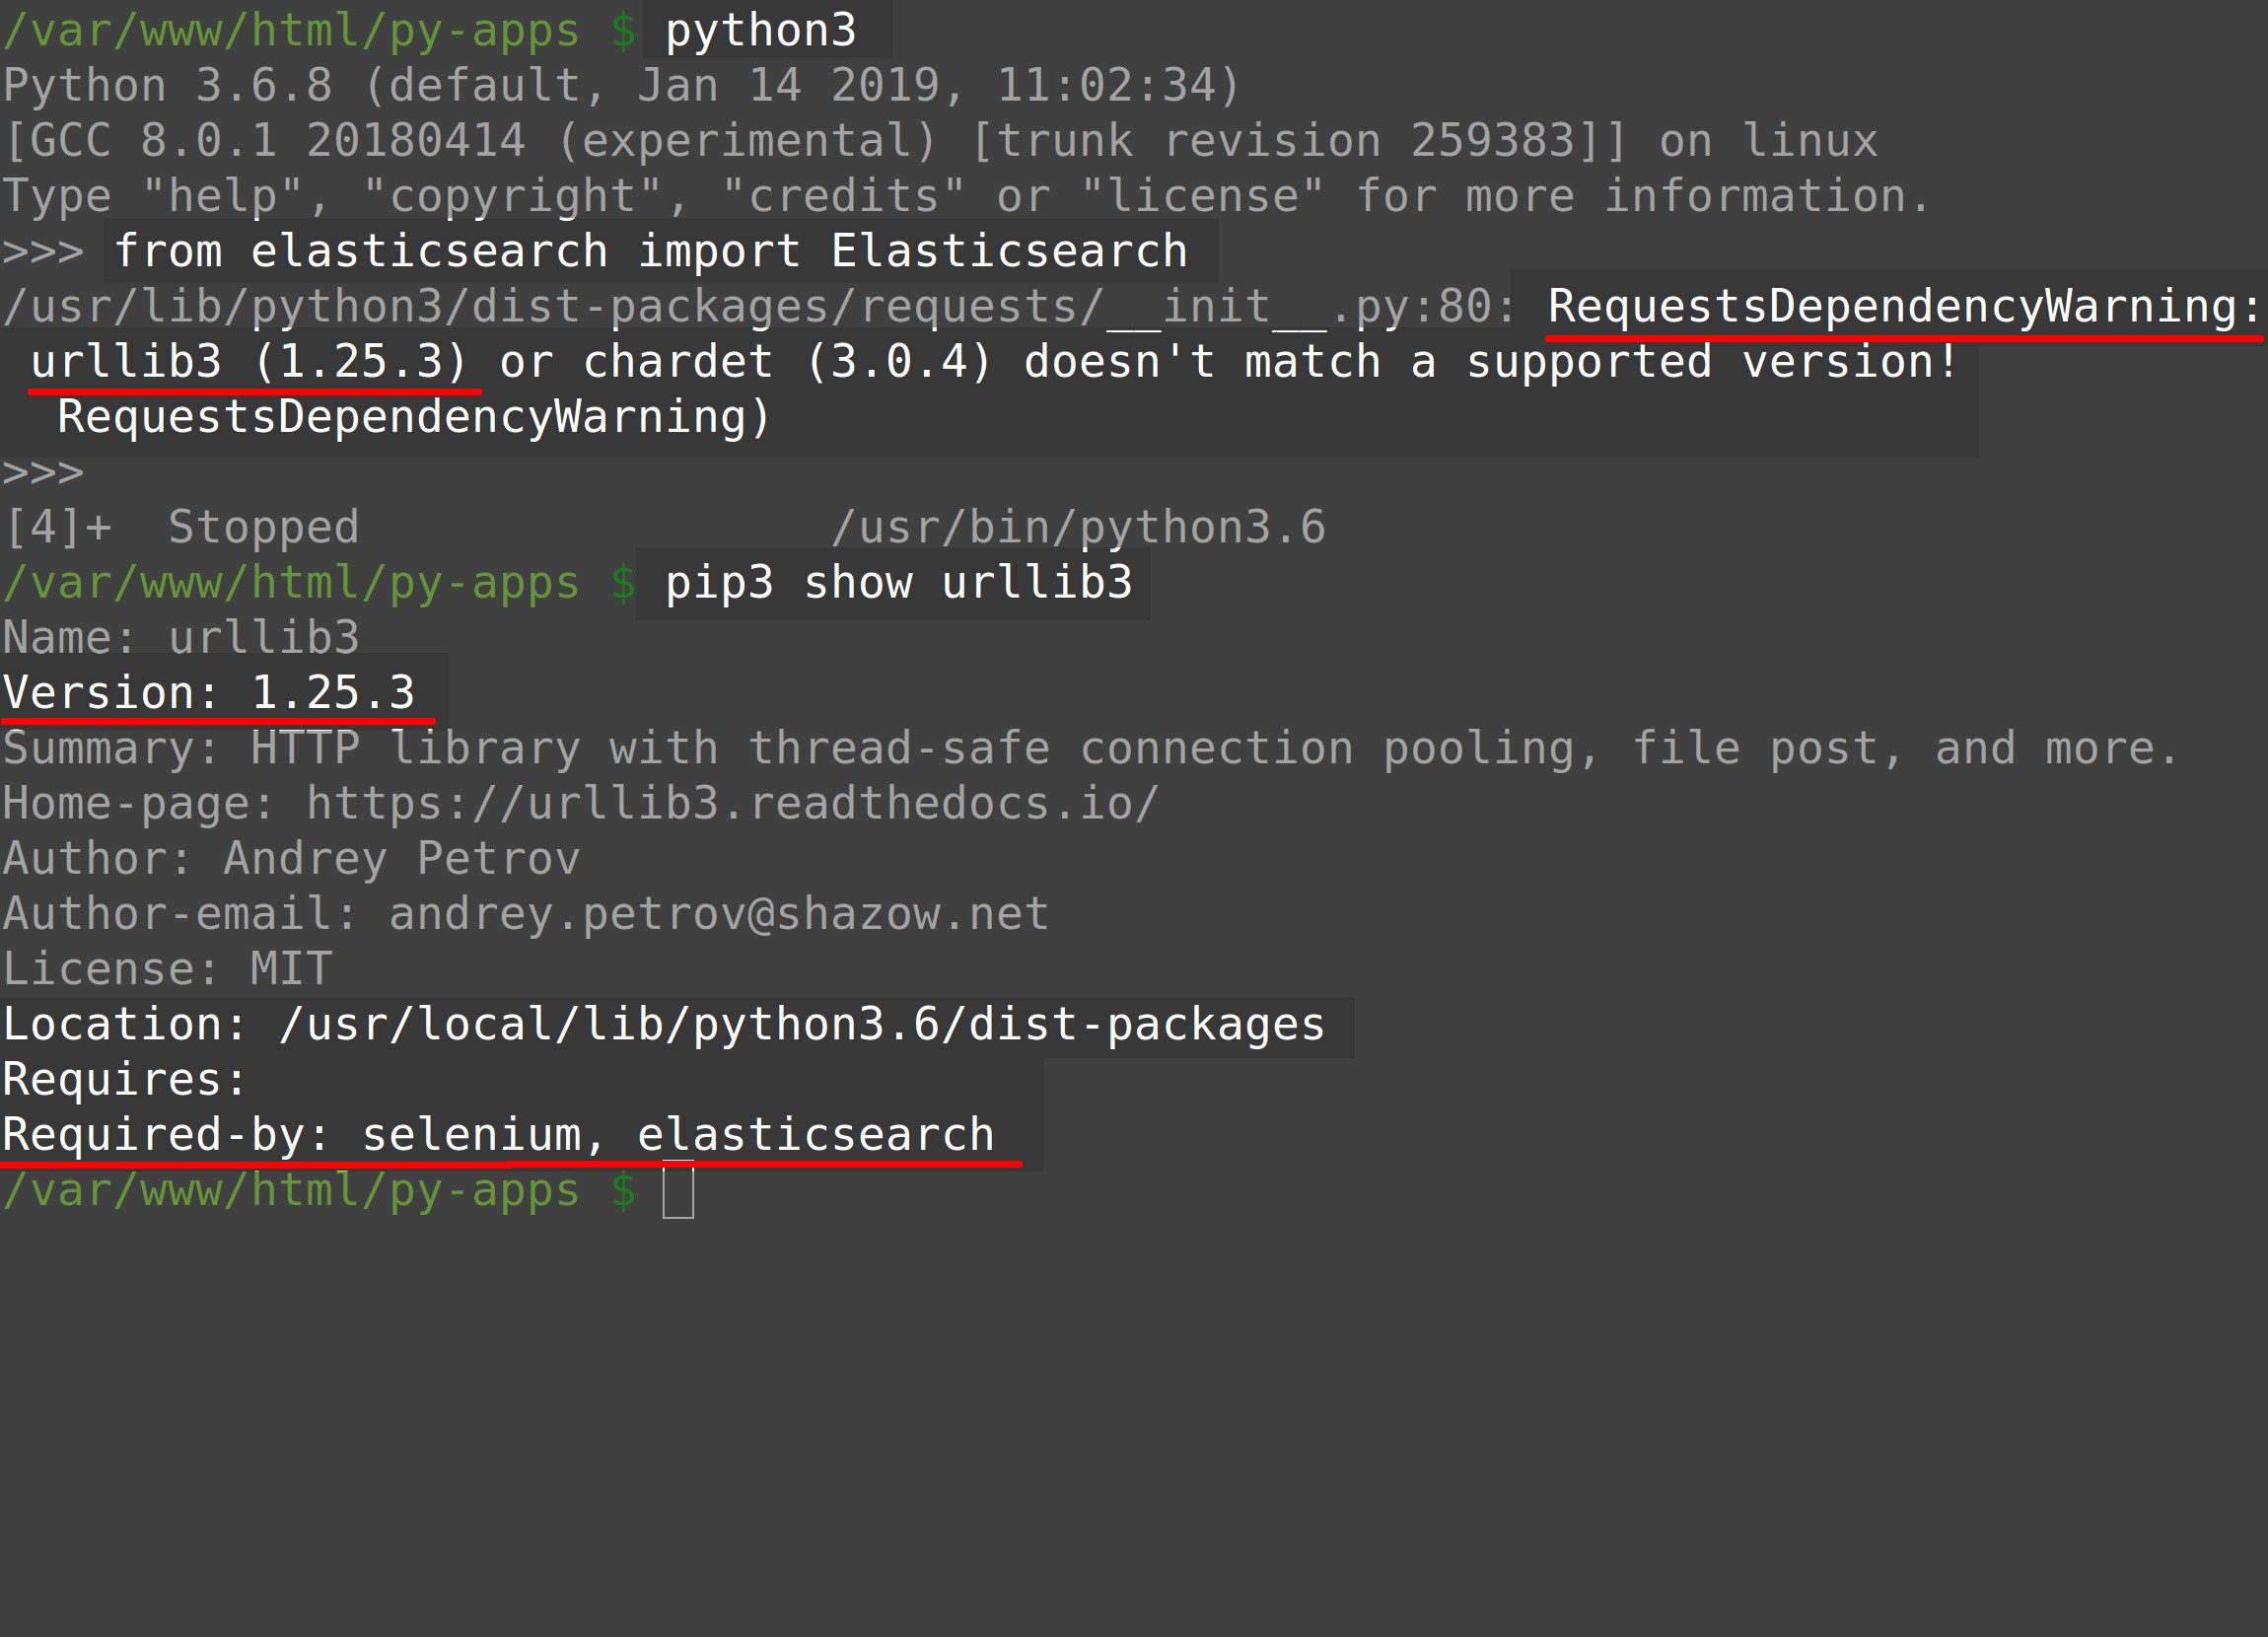 Screenshot of a Python returning RequestsDependencyWarning while importing Elasticsearch